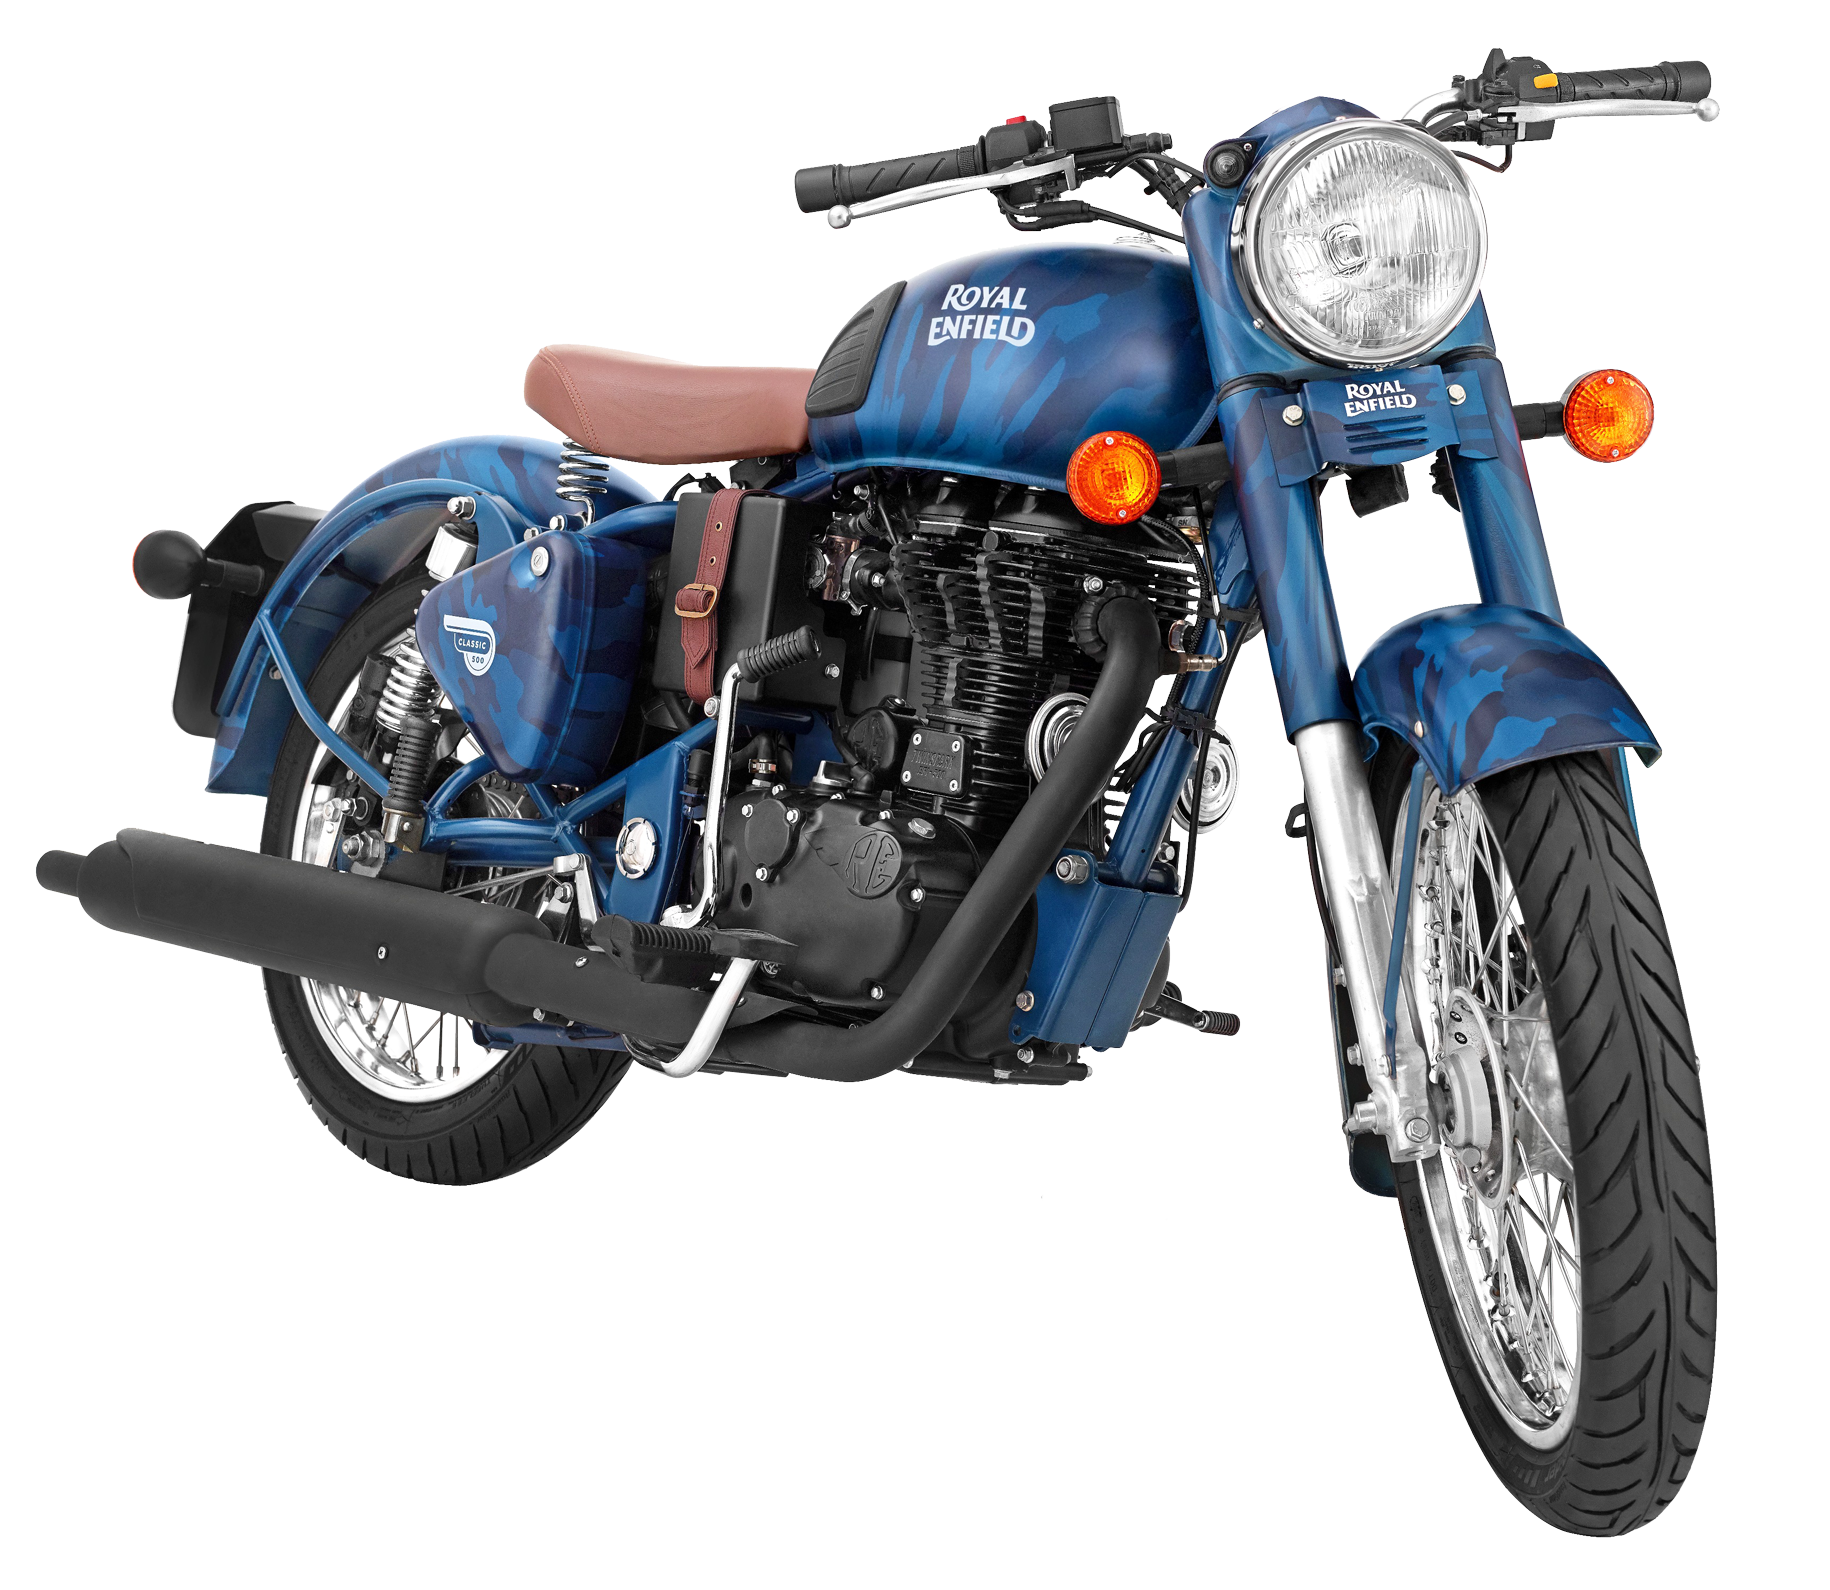 Royal Enfield Classic 500 Squadron Blue Motorcycle Bike PNG.